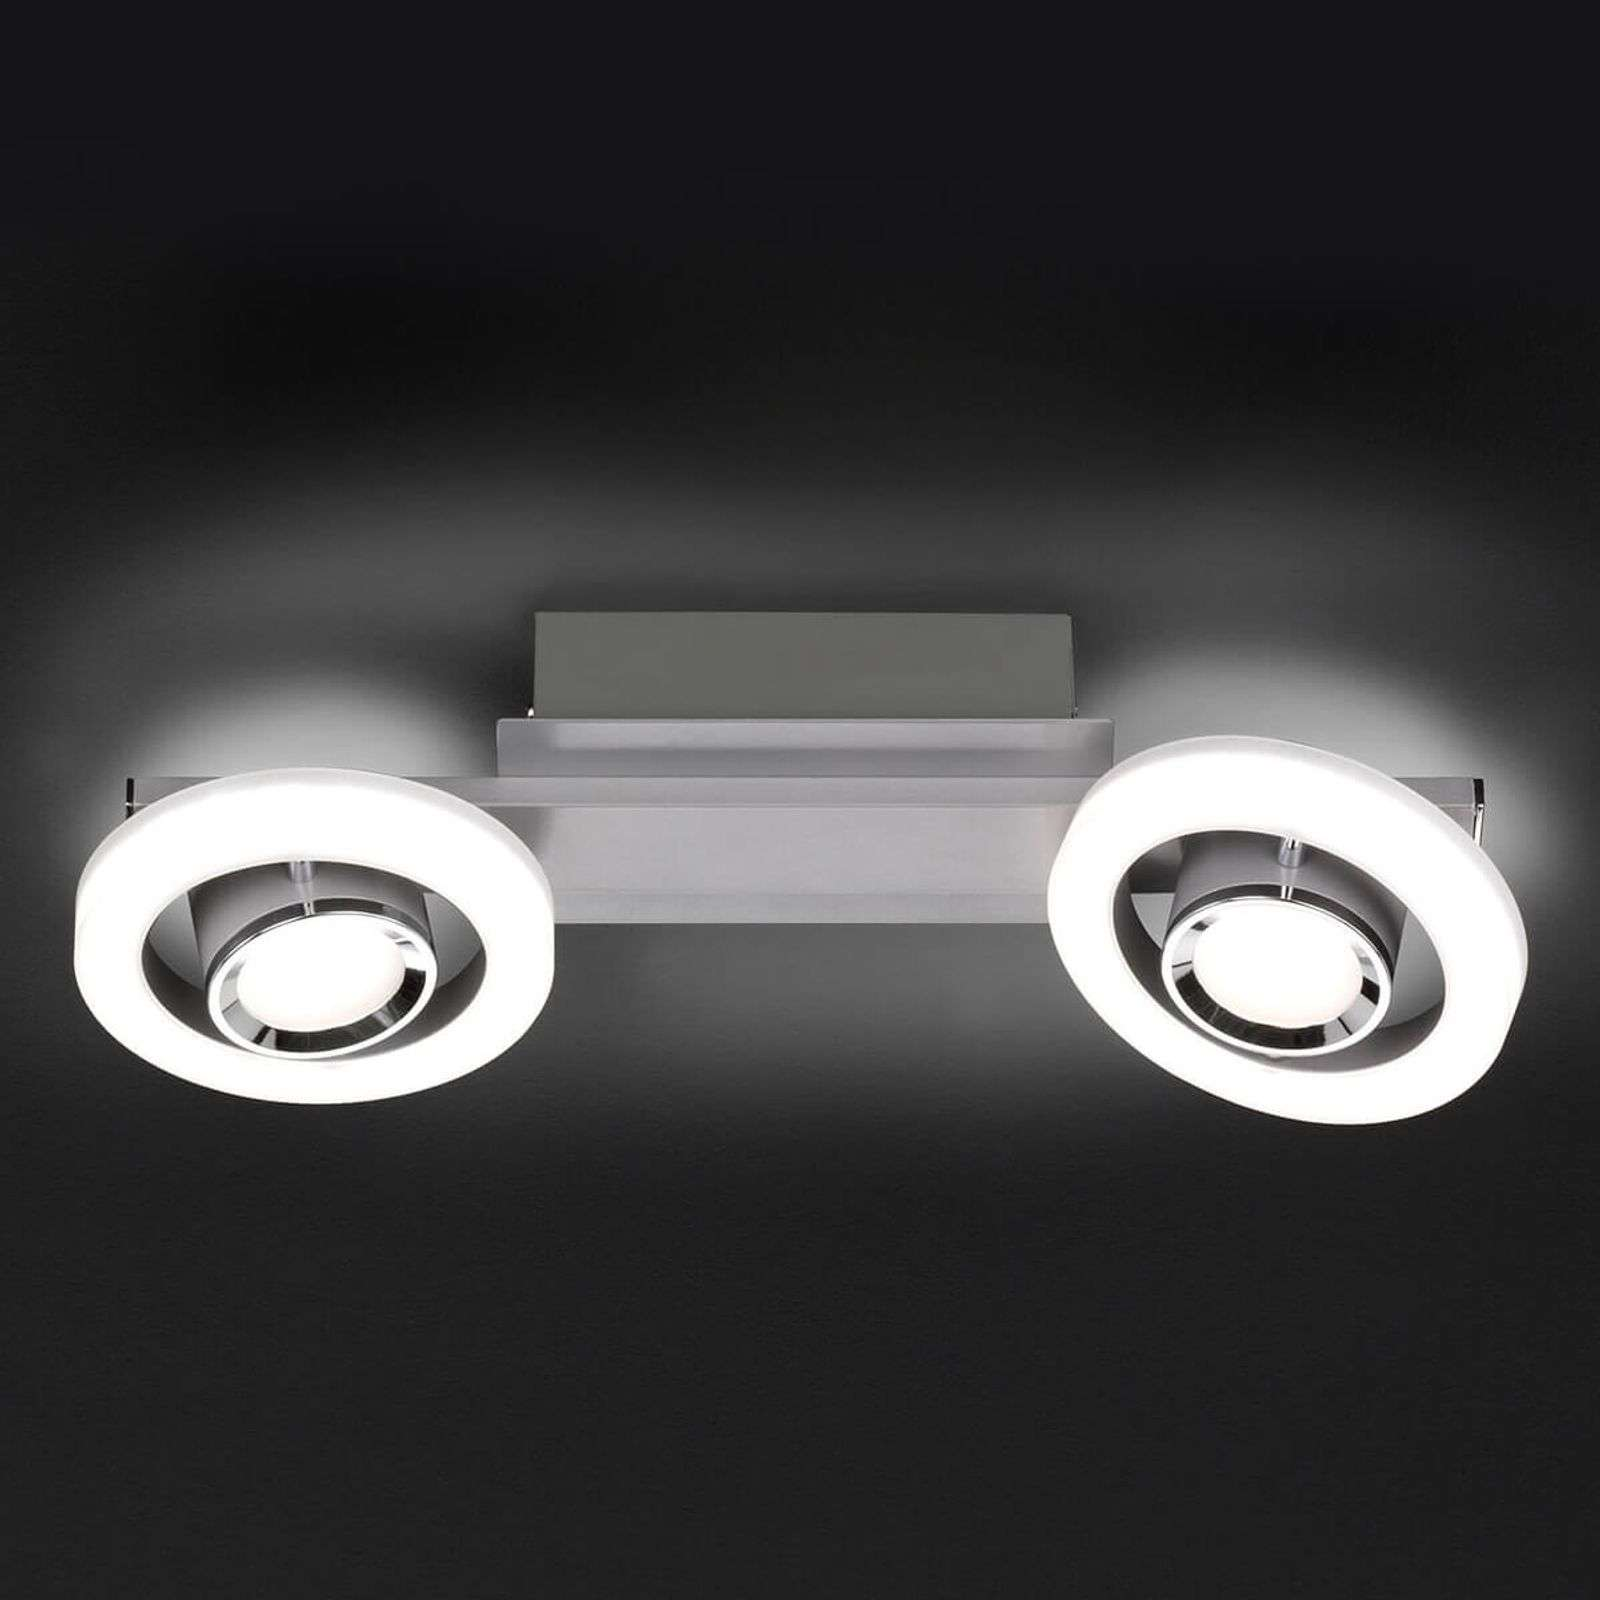 LED plafondlamp Detroit m. dimmer